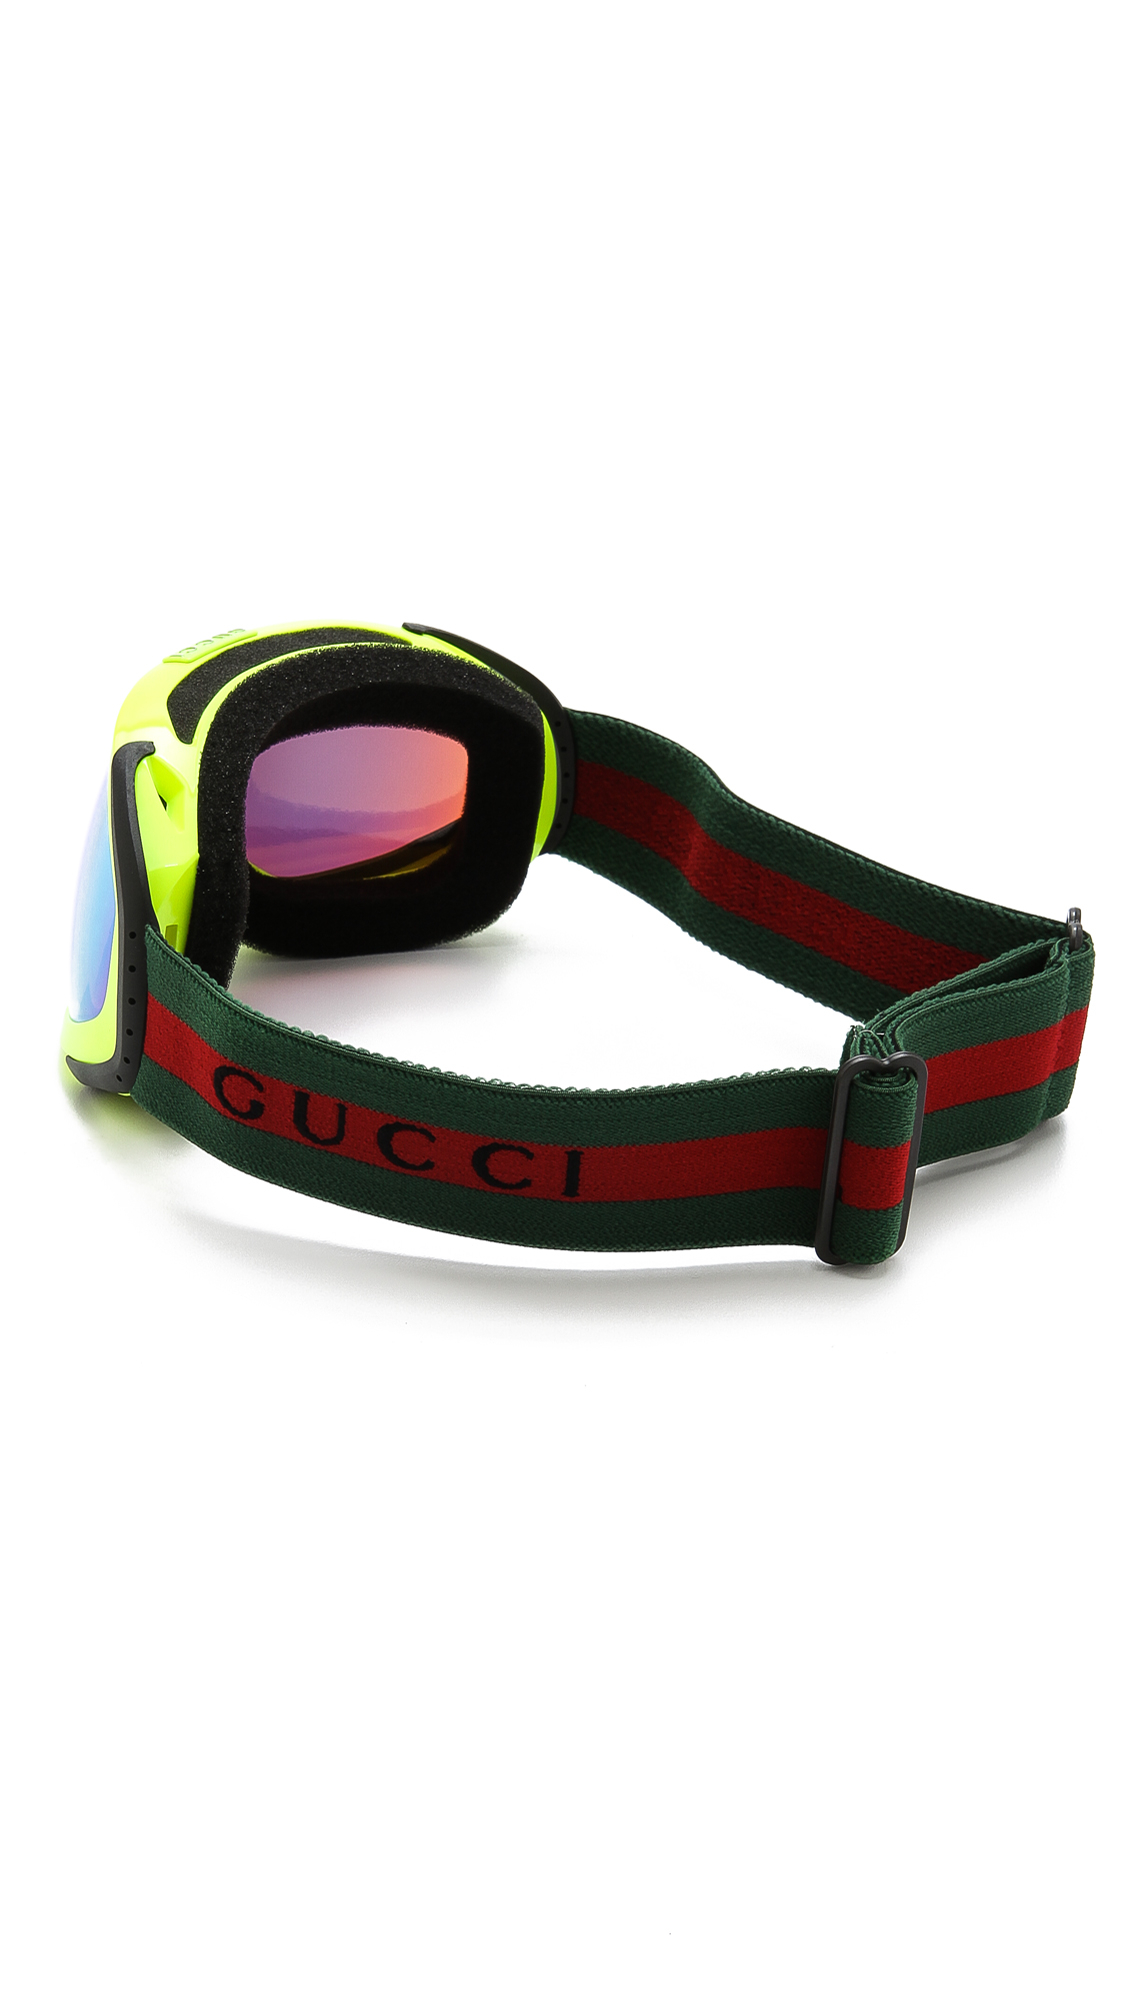 baf92267ba6e Lyst - Gucci Ski Goggles with Fluorescent Lens in Yellow for Men